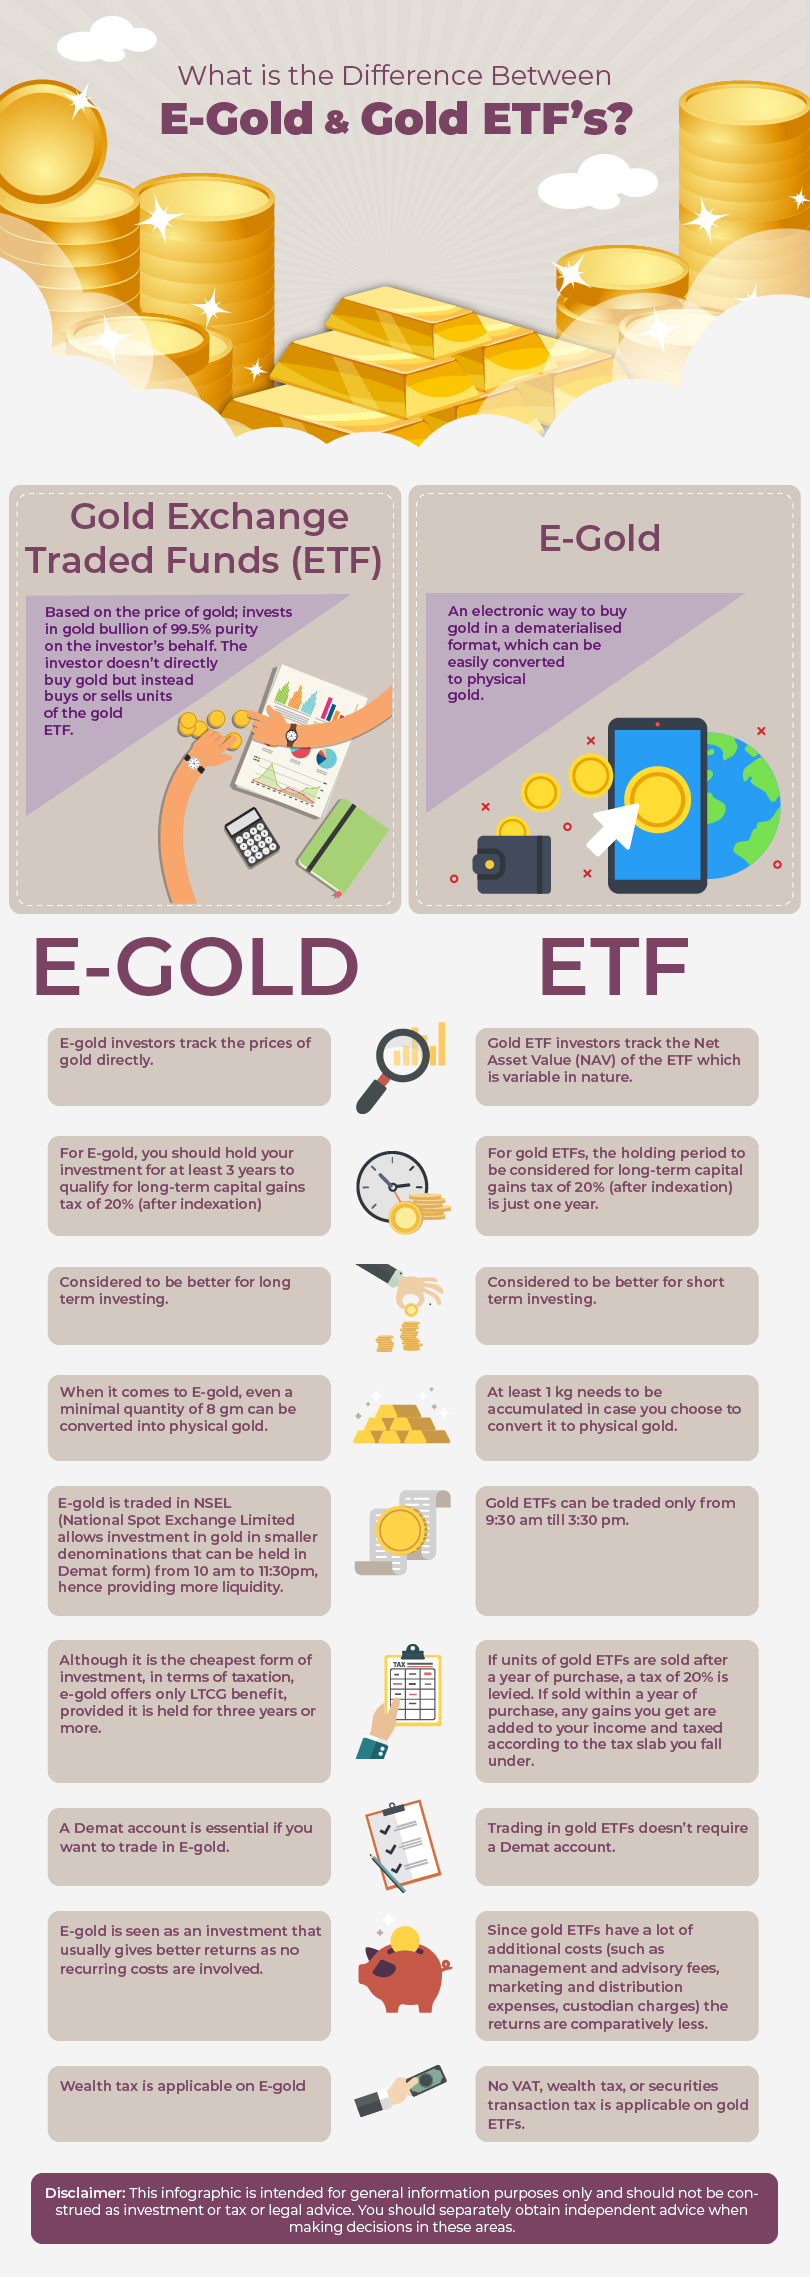 What is the difference between E-gold and gold ETFs?